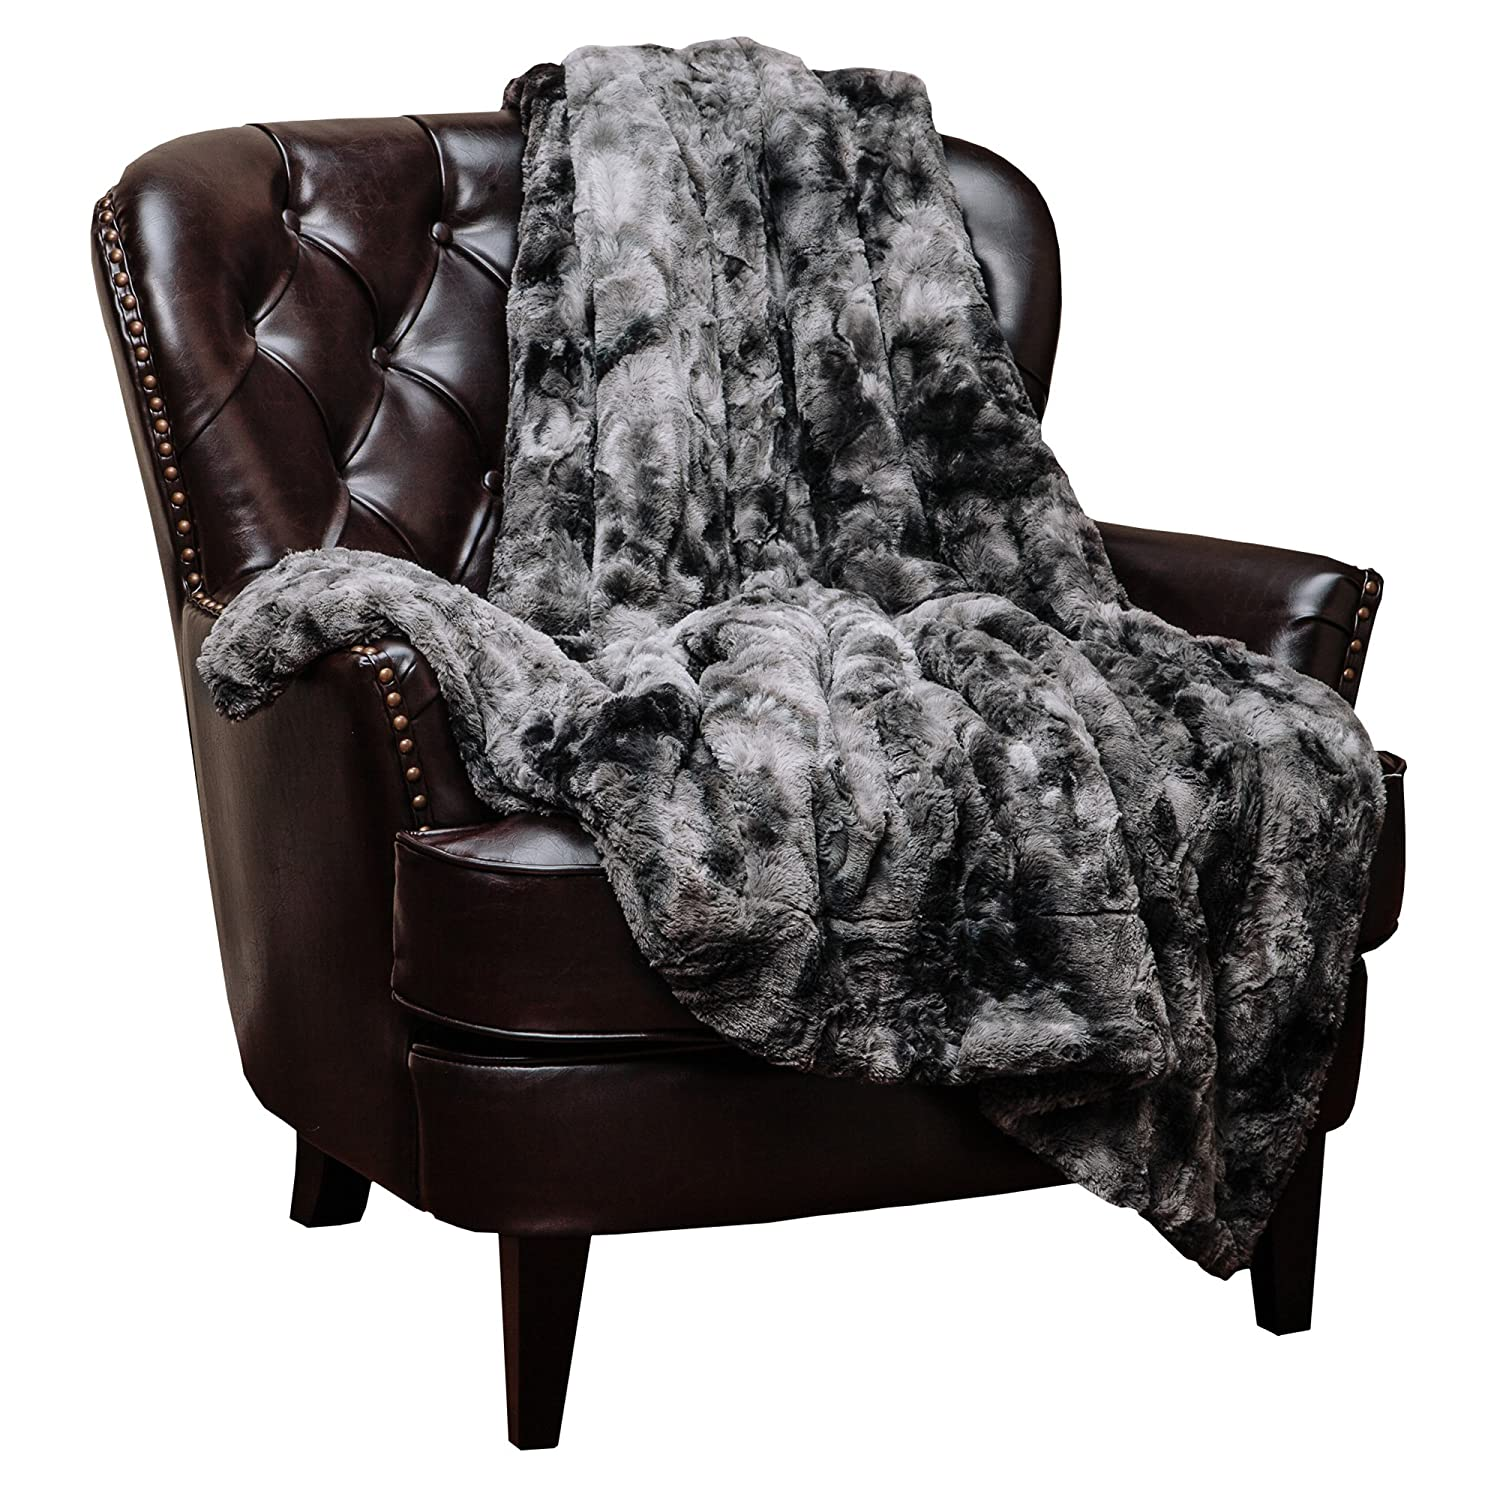 "Chanasya Faux Fur Throw Blanket | Super Soft Fuzzy Light Weight Luxurious Cozy Warm Fluffy Plush Hypoallergenic Blanket for Bed Couch Chair Fall Winter Spring Living Room (60"" x 70"") - Dark Grey"